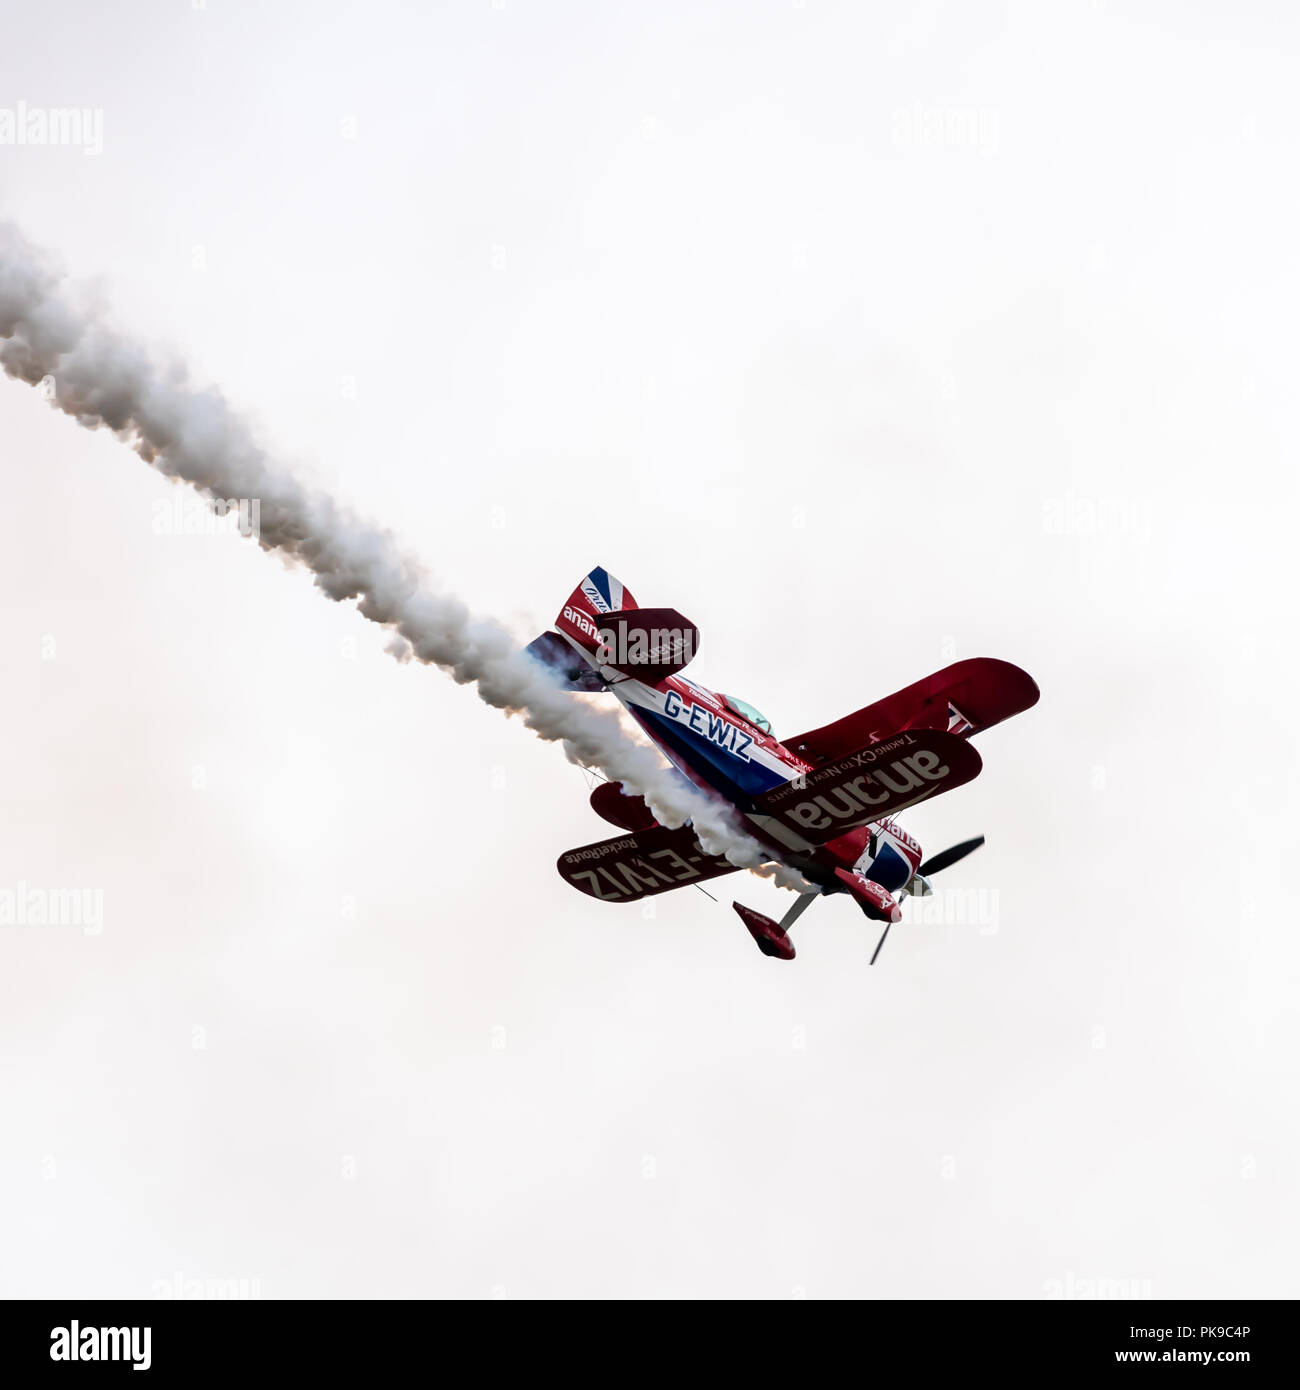 A Pitts Special S2S biplane with a highly modified. 8.5 ltre Lycoming 540 engine trails a plume of thick white smoke during a display - Stock Image